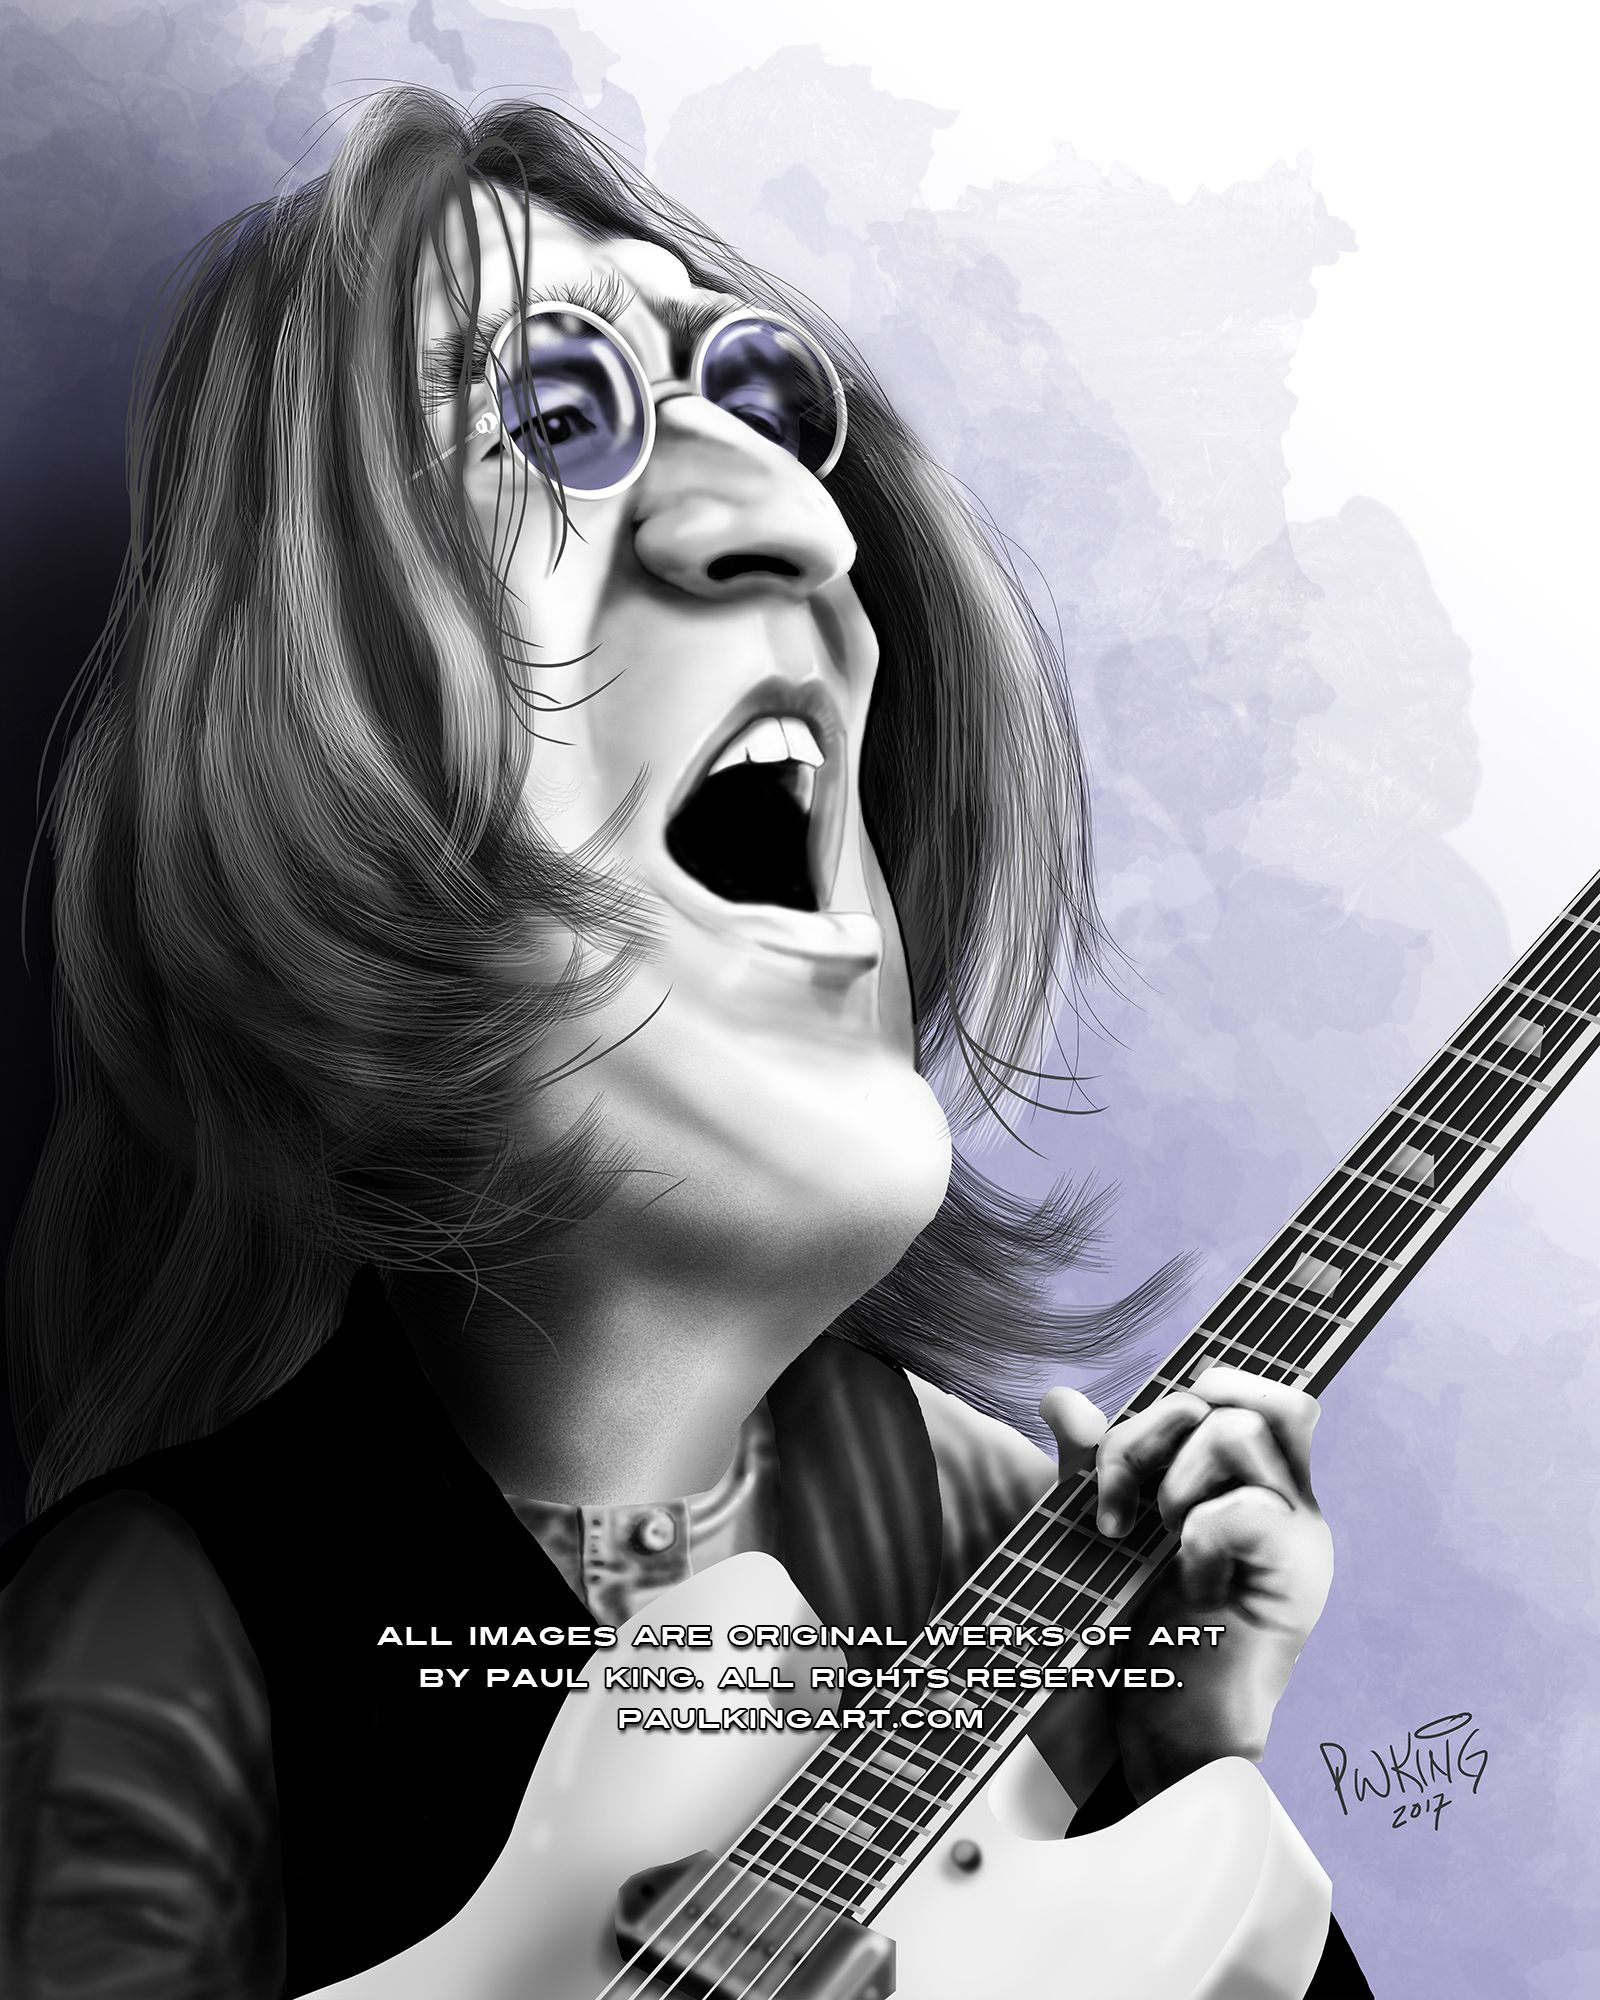 John Lennon Caricature 1968 White Album Sessions Here With His 1965 Epiphone Casino Note The Prudence In Dear Prudence Caricature Music Art Mia Farrow